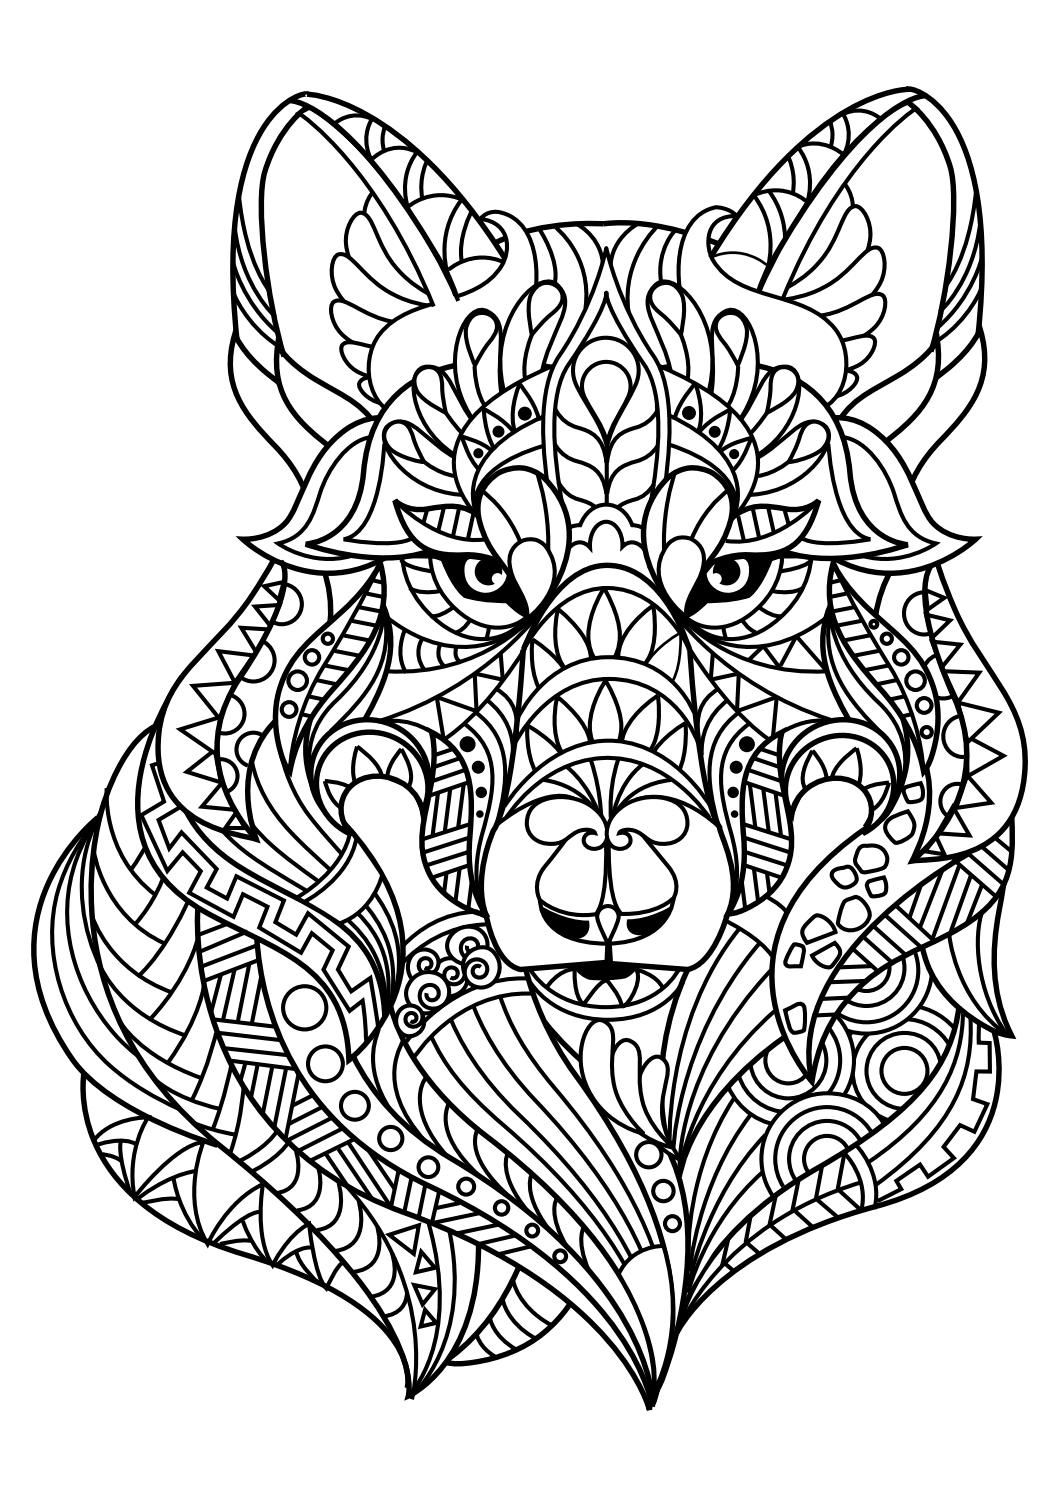 Animal coloring pages pdf | Coloring - Animals | Pinterest | Adult ...